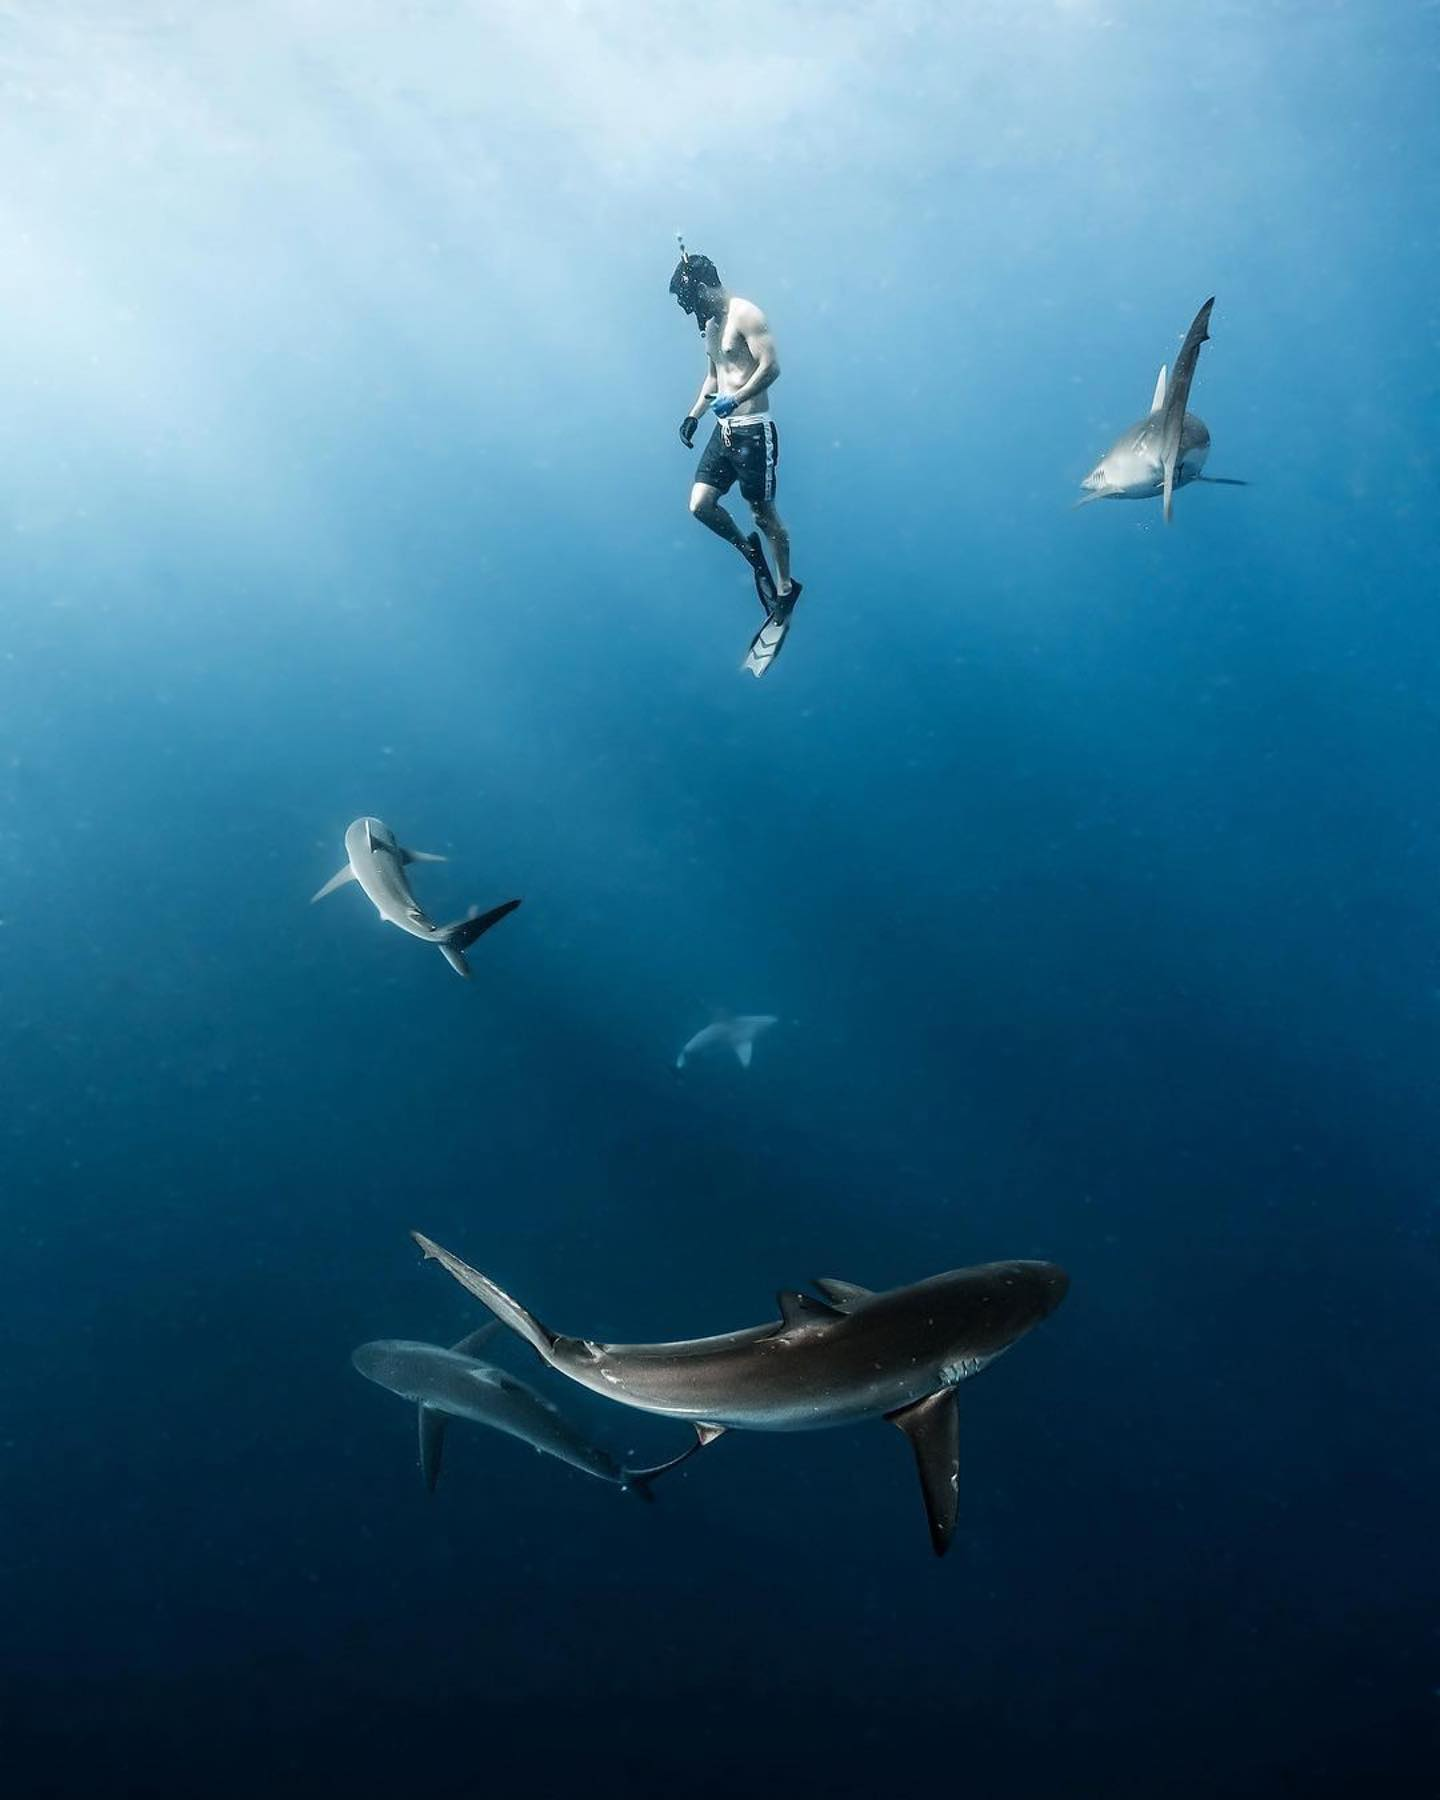 An image of a shark diver with sharks circling on a shark diving adventure.